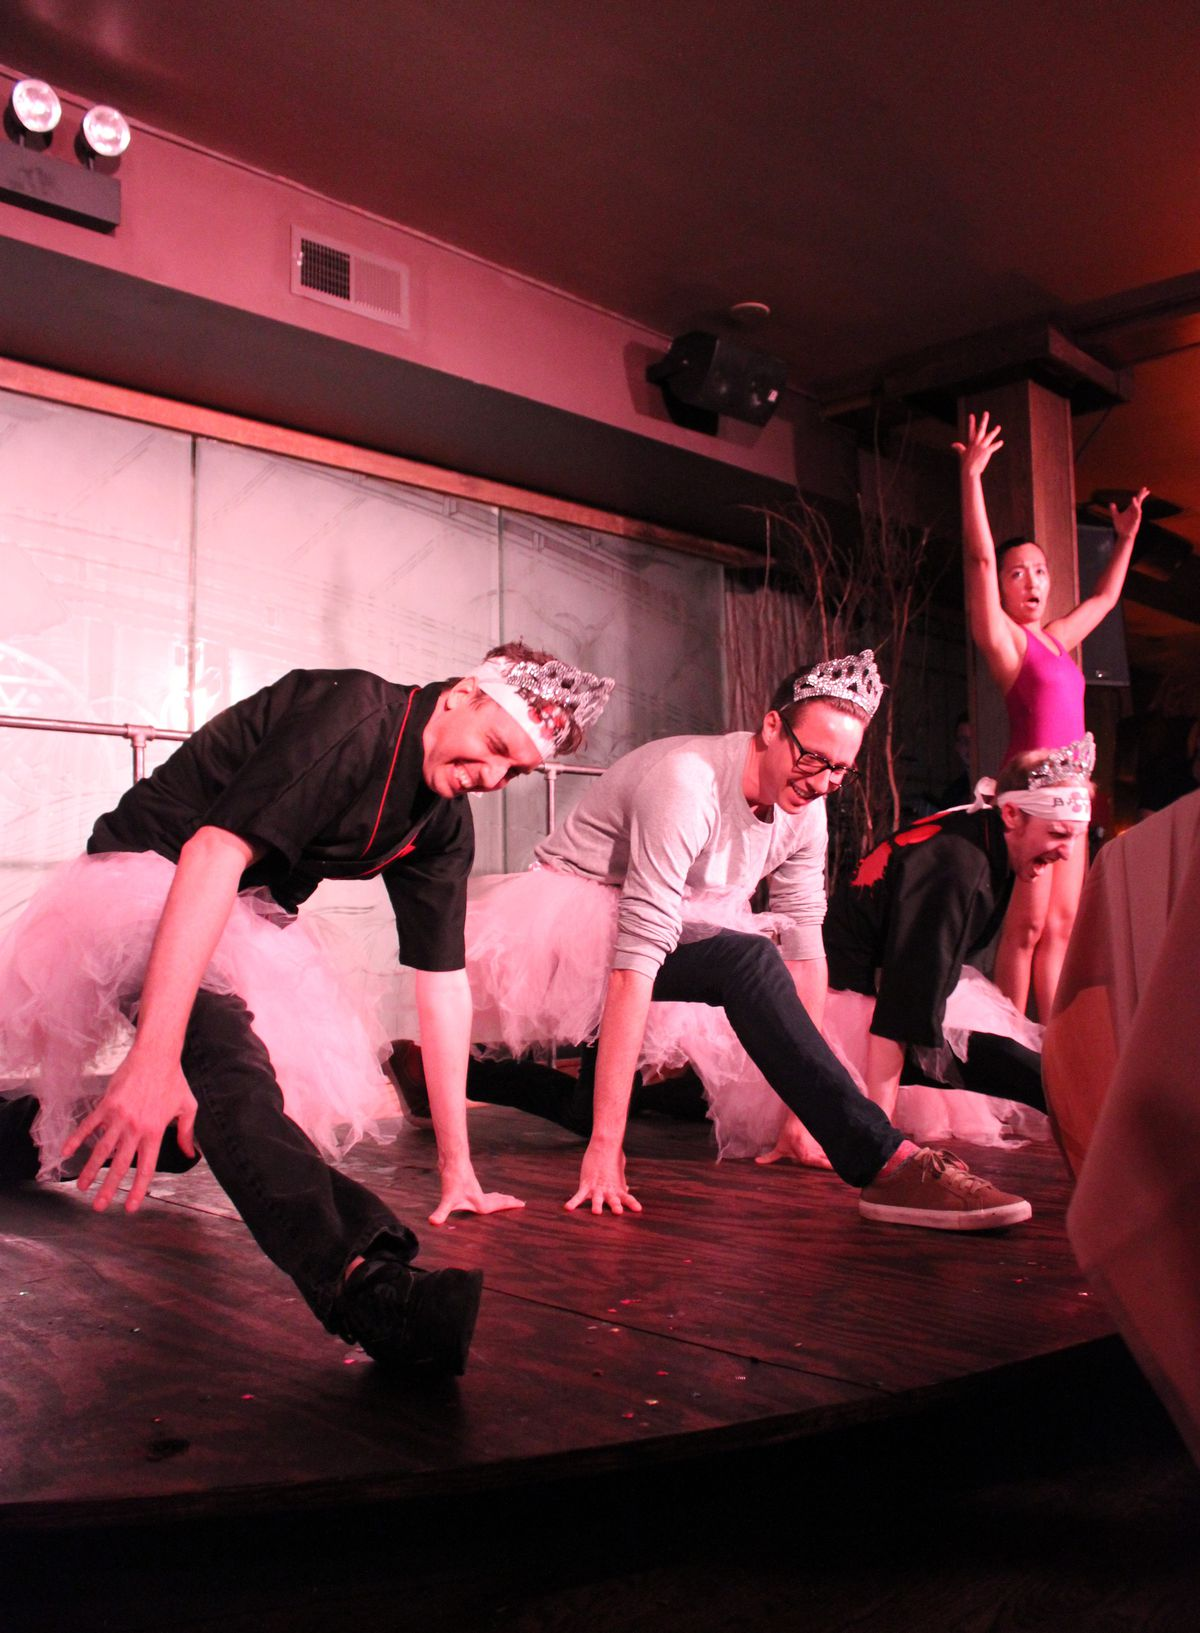 """As a punishment for losing the beer chugging contest, BATSU! cast members Eric Robinson (left) and Nate Mount (right) along with audience member Matthew Robinson (center) had to demonstrate ballet moves directed by """"Samantha San,"""" including plies, twirls"""